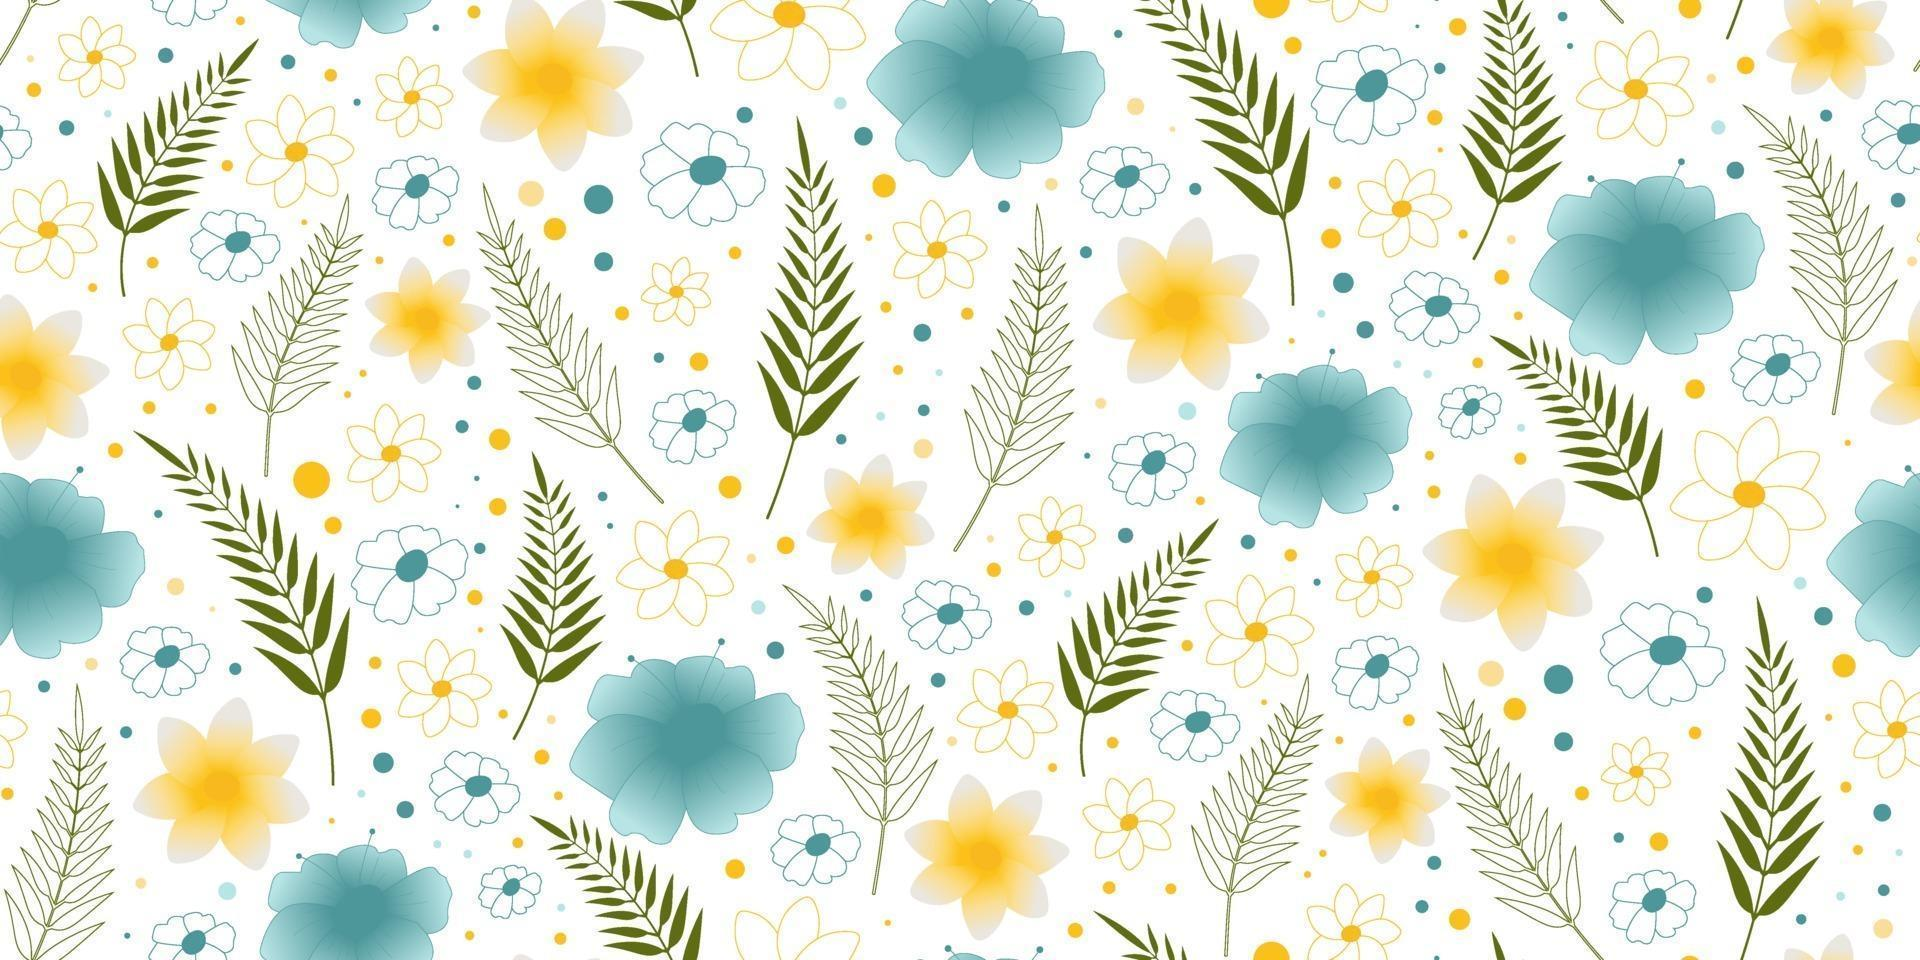 Beach cheerful seamless pattern with palm leaves and flowers. Perfect for wallpaper, background, wrapping paper and fabric. vector